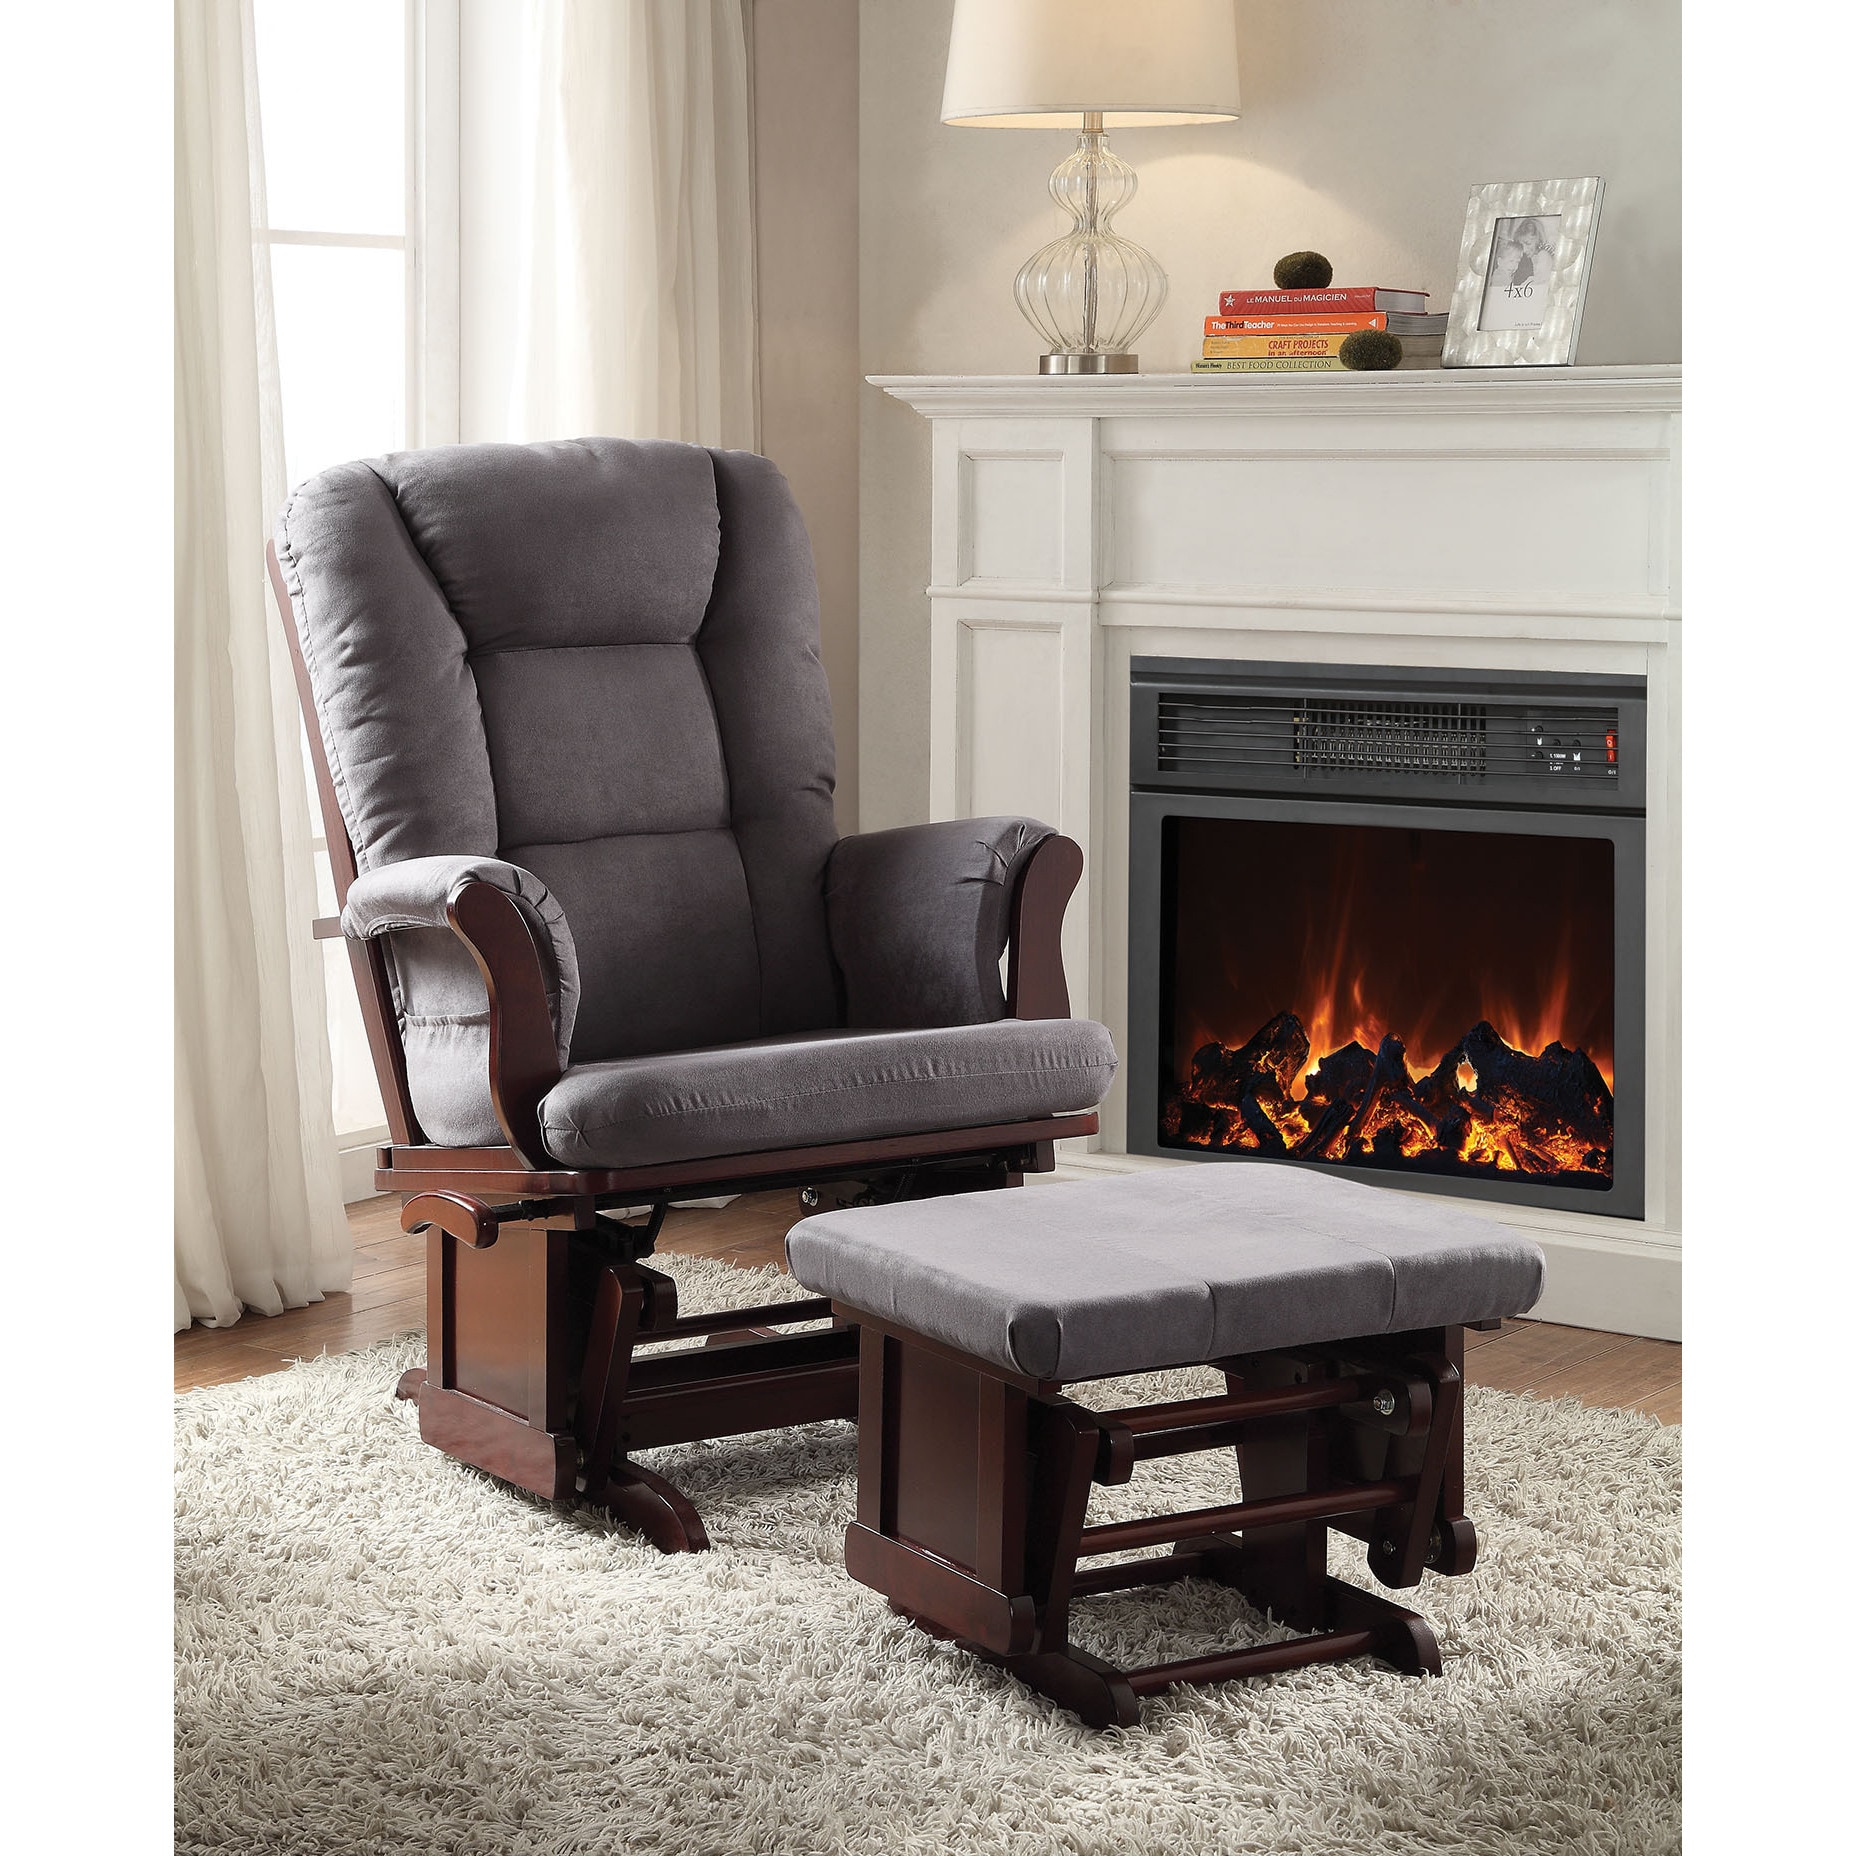 Details about Glider Chair Ottoman Set Baby Nursery Furniture Cherry Finish  Bedroom Gift New